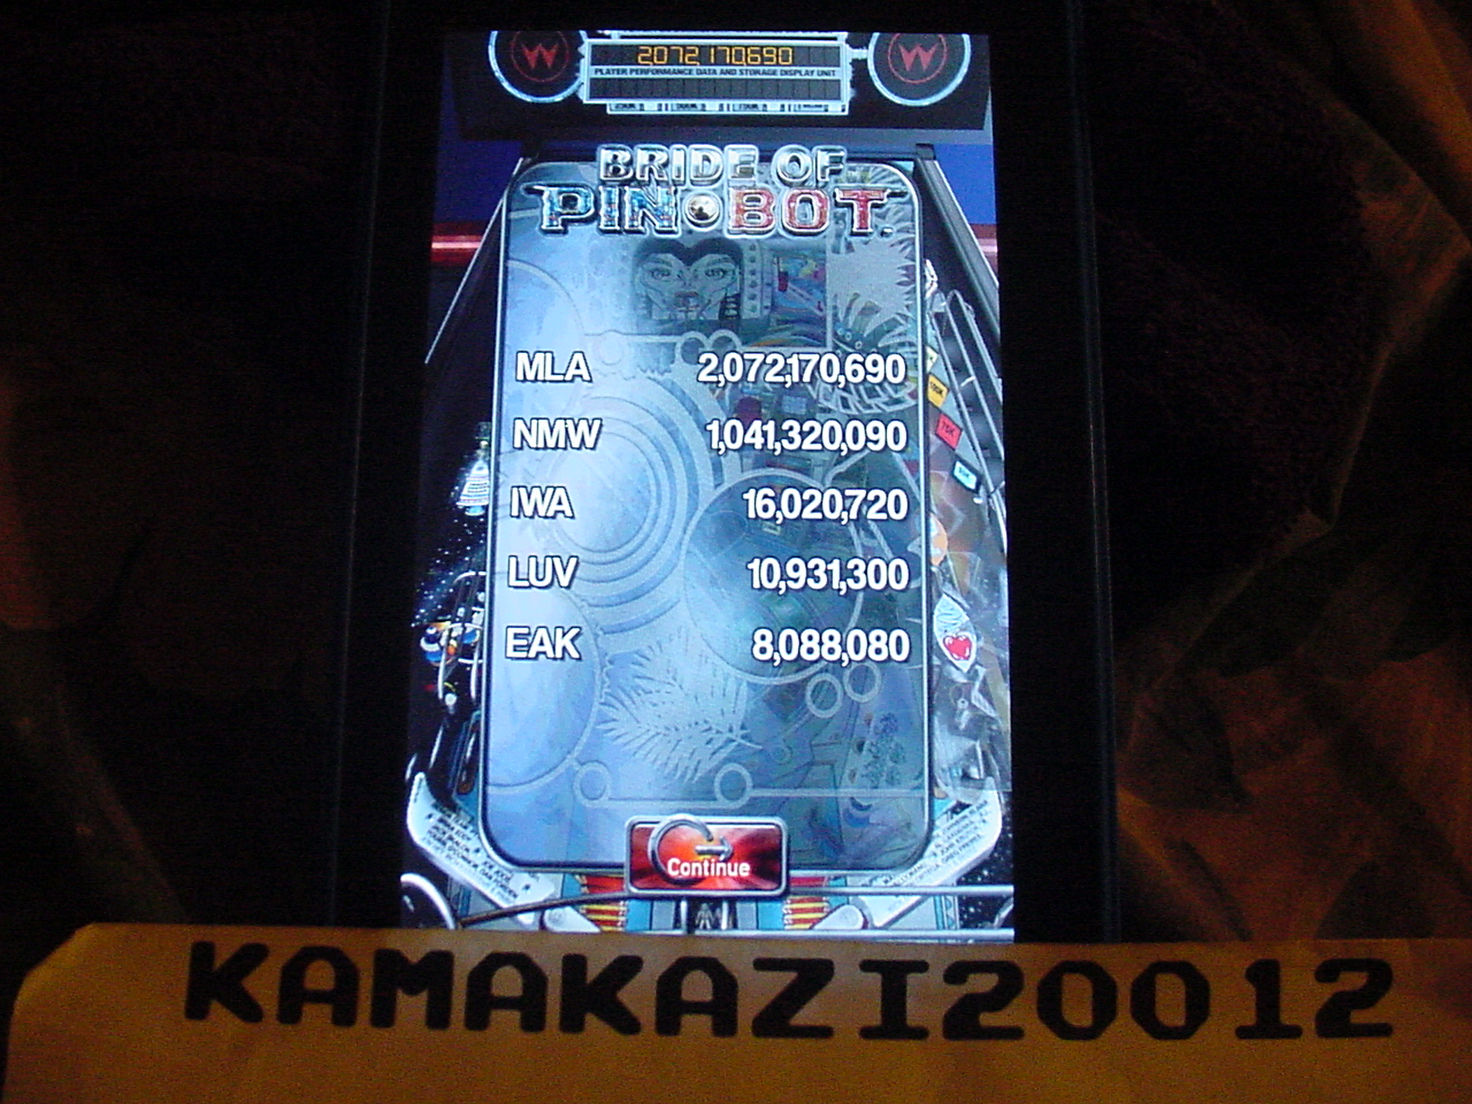 Pinball Arcade: The Machine: Bride of Pin*Bot 2,072,170,690 points